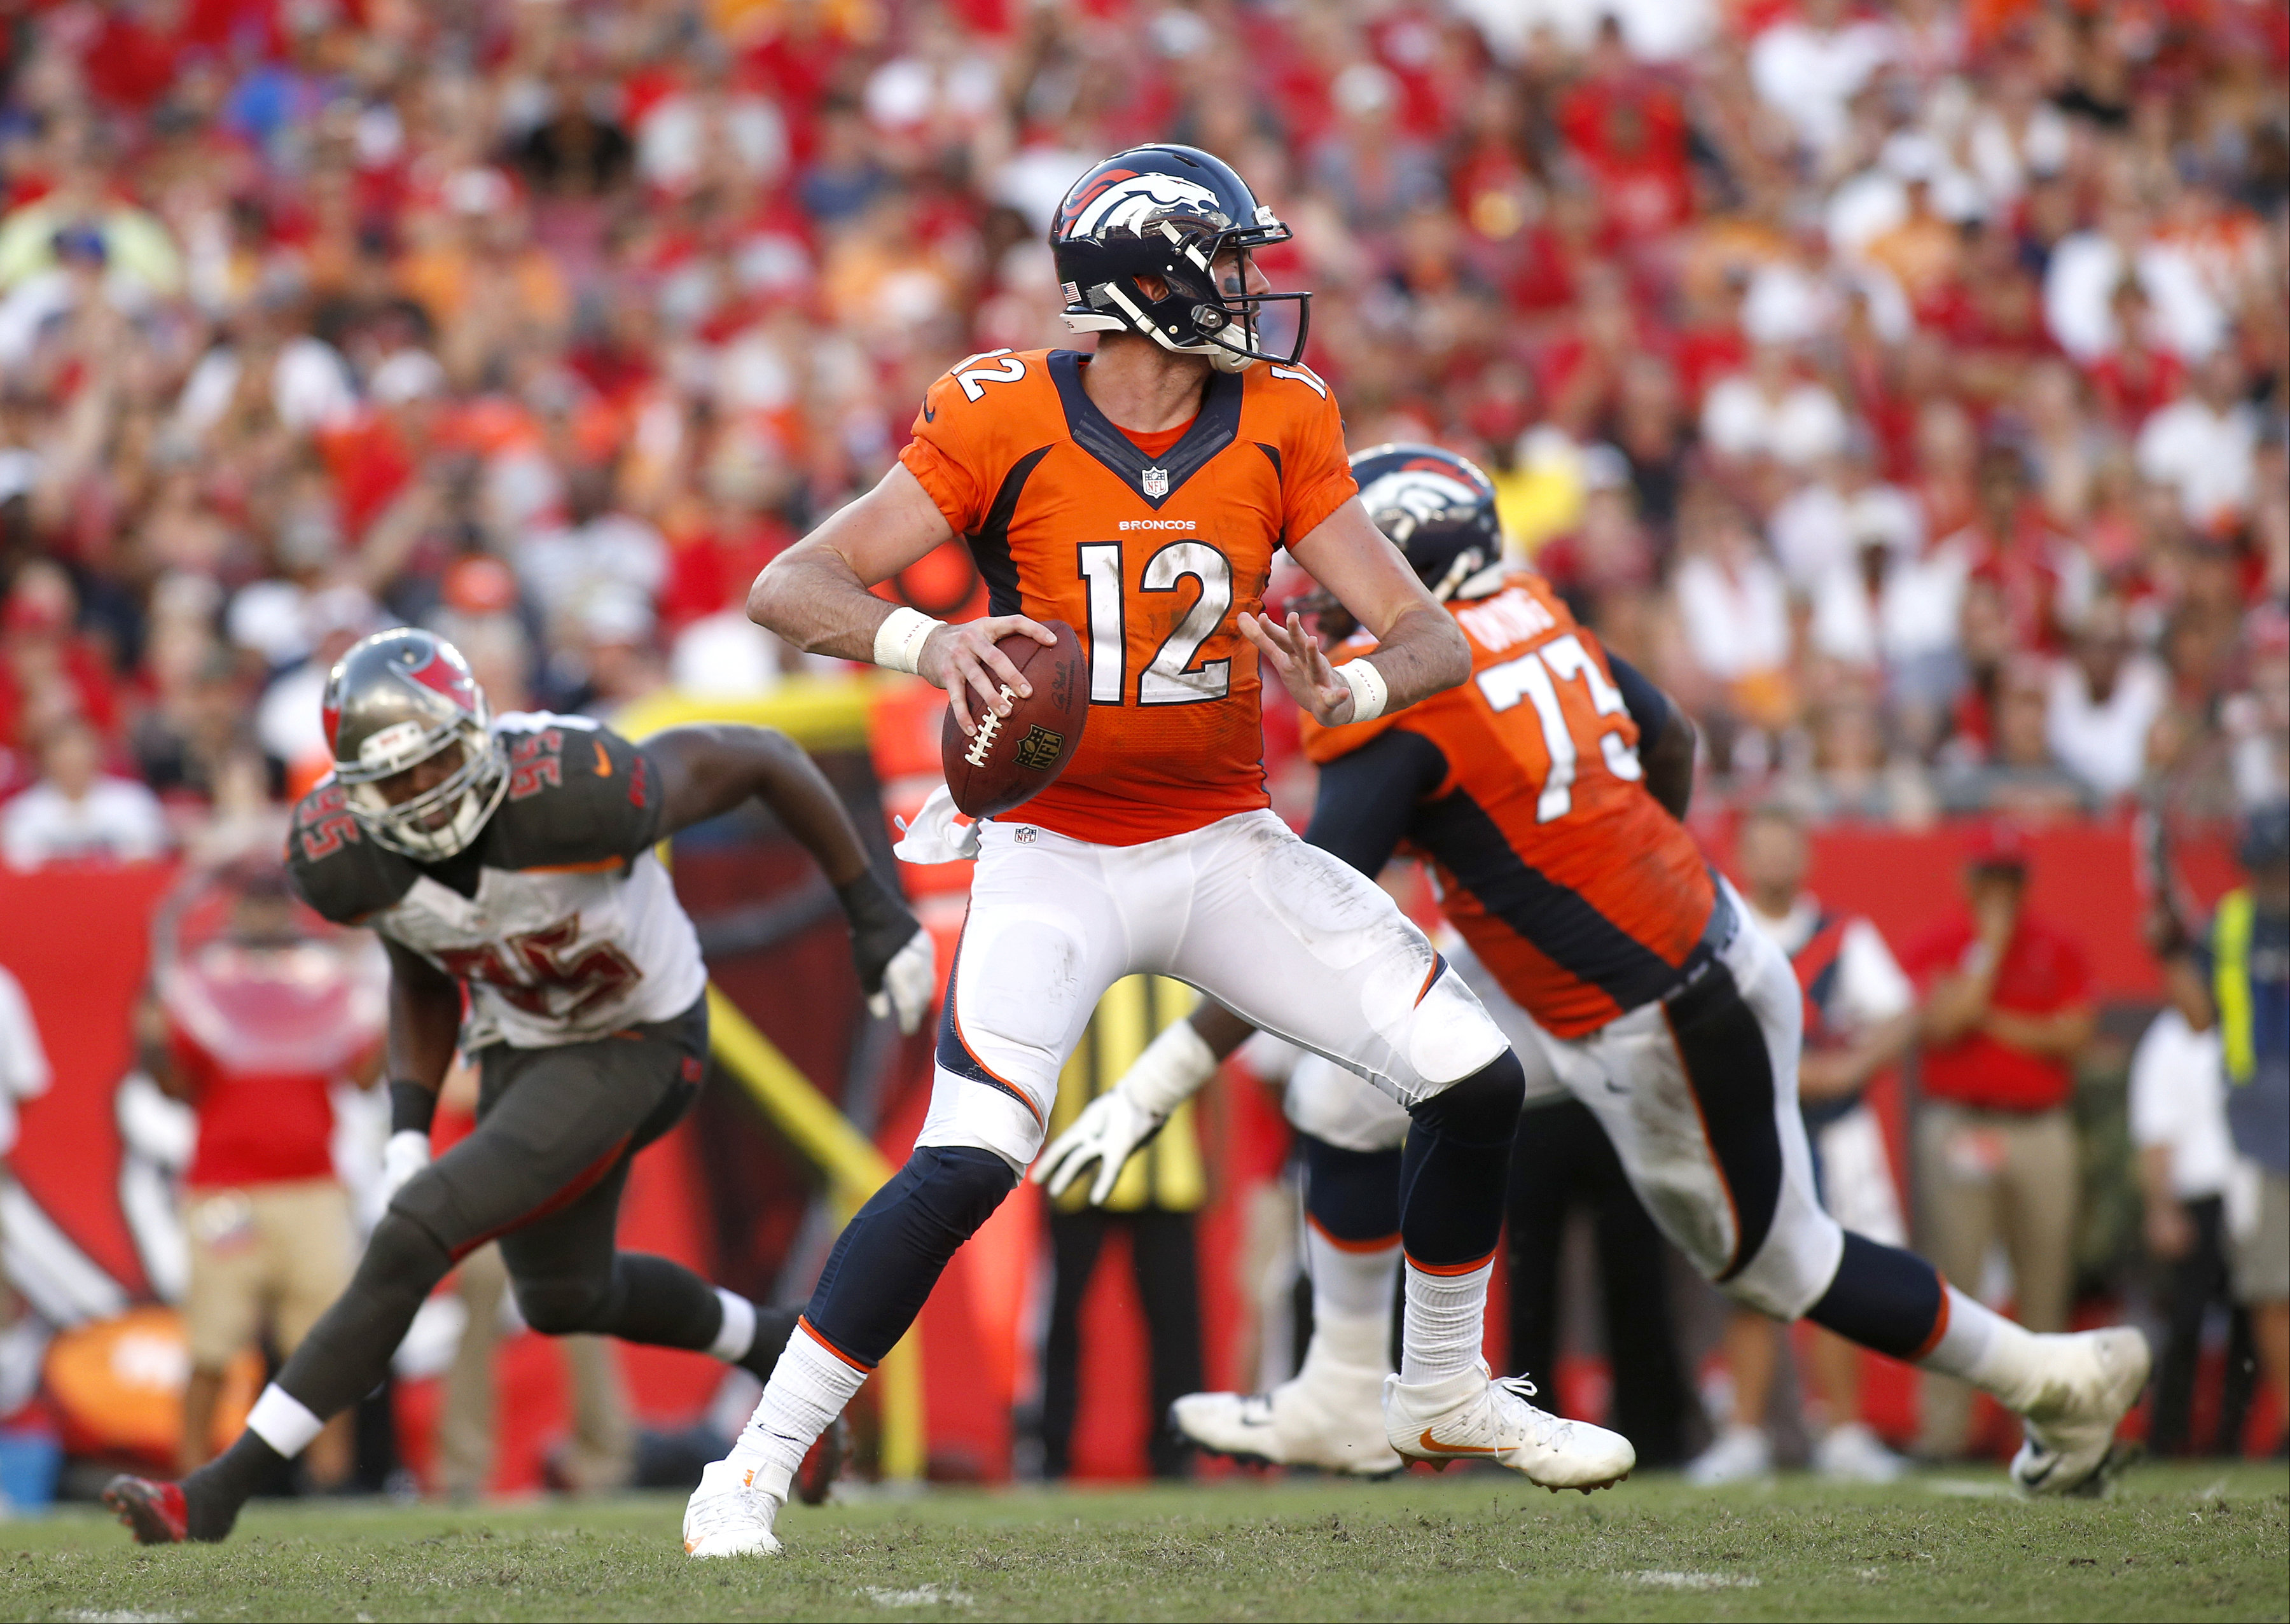 Quarterback Paxton Lynch #12 of the Denver Broncos looks for an open receiver during the third quarter of an NFL game against the Tampa Bay Buccaneers on October 2, 2016 at Raymond James Stadium in Tampa, Florida. (Photo by Brian Blanco/Getty Images)